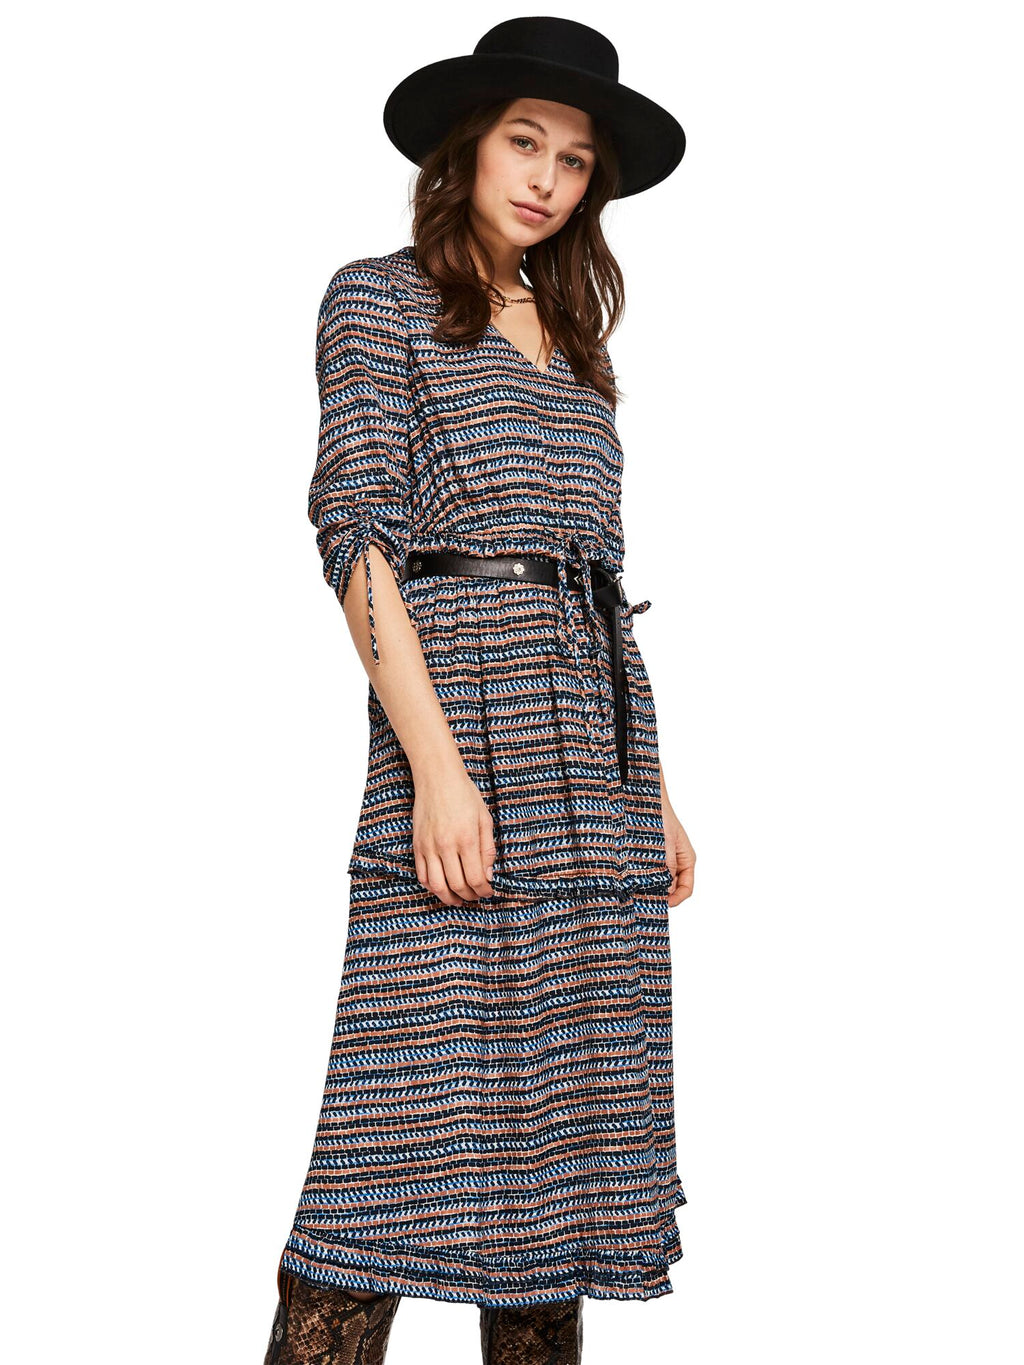 SCOTCH AND SODA - Printed Midi Dress online at PAYA boutique